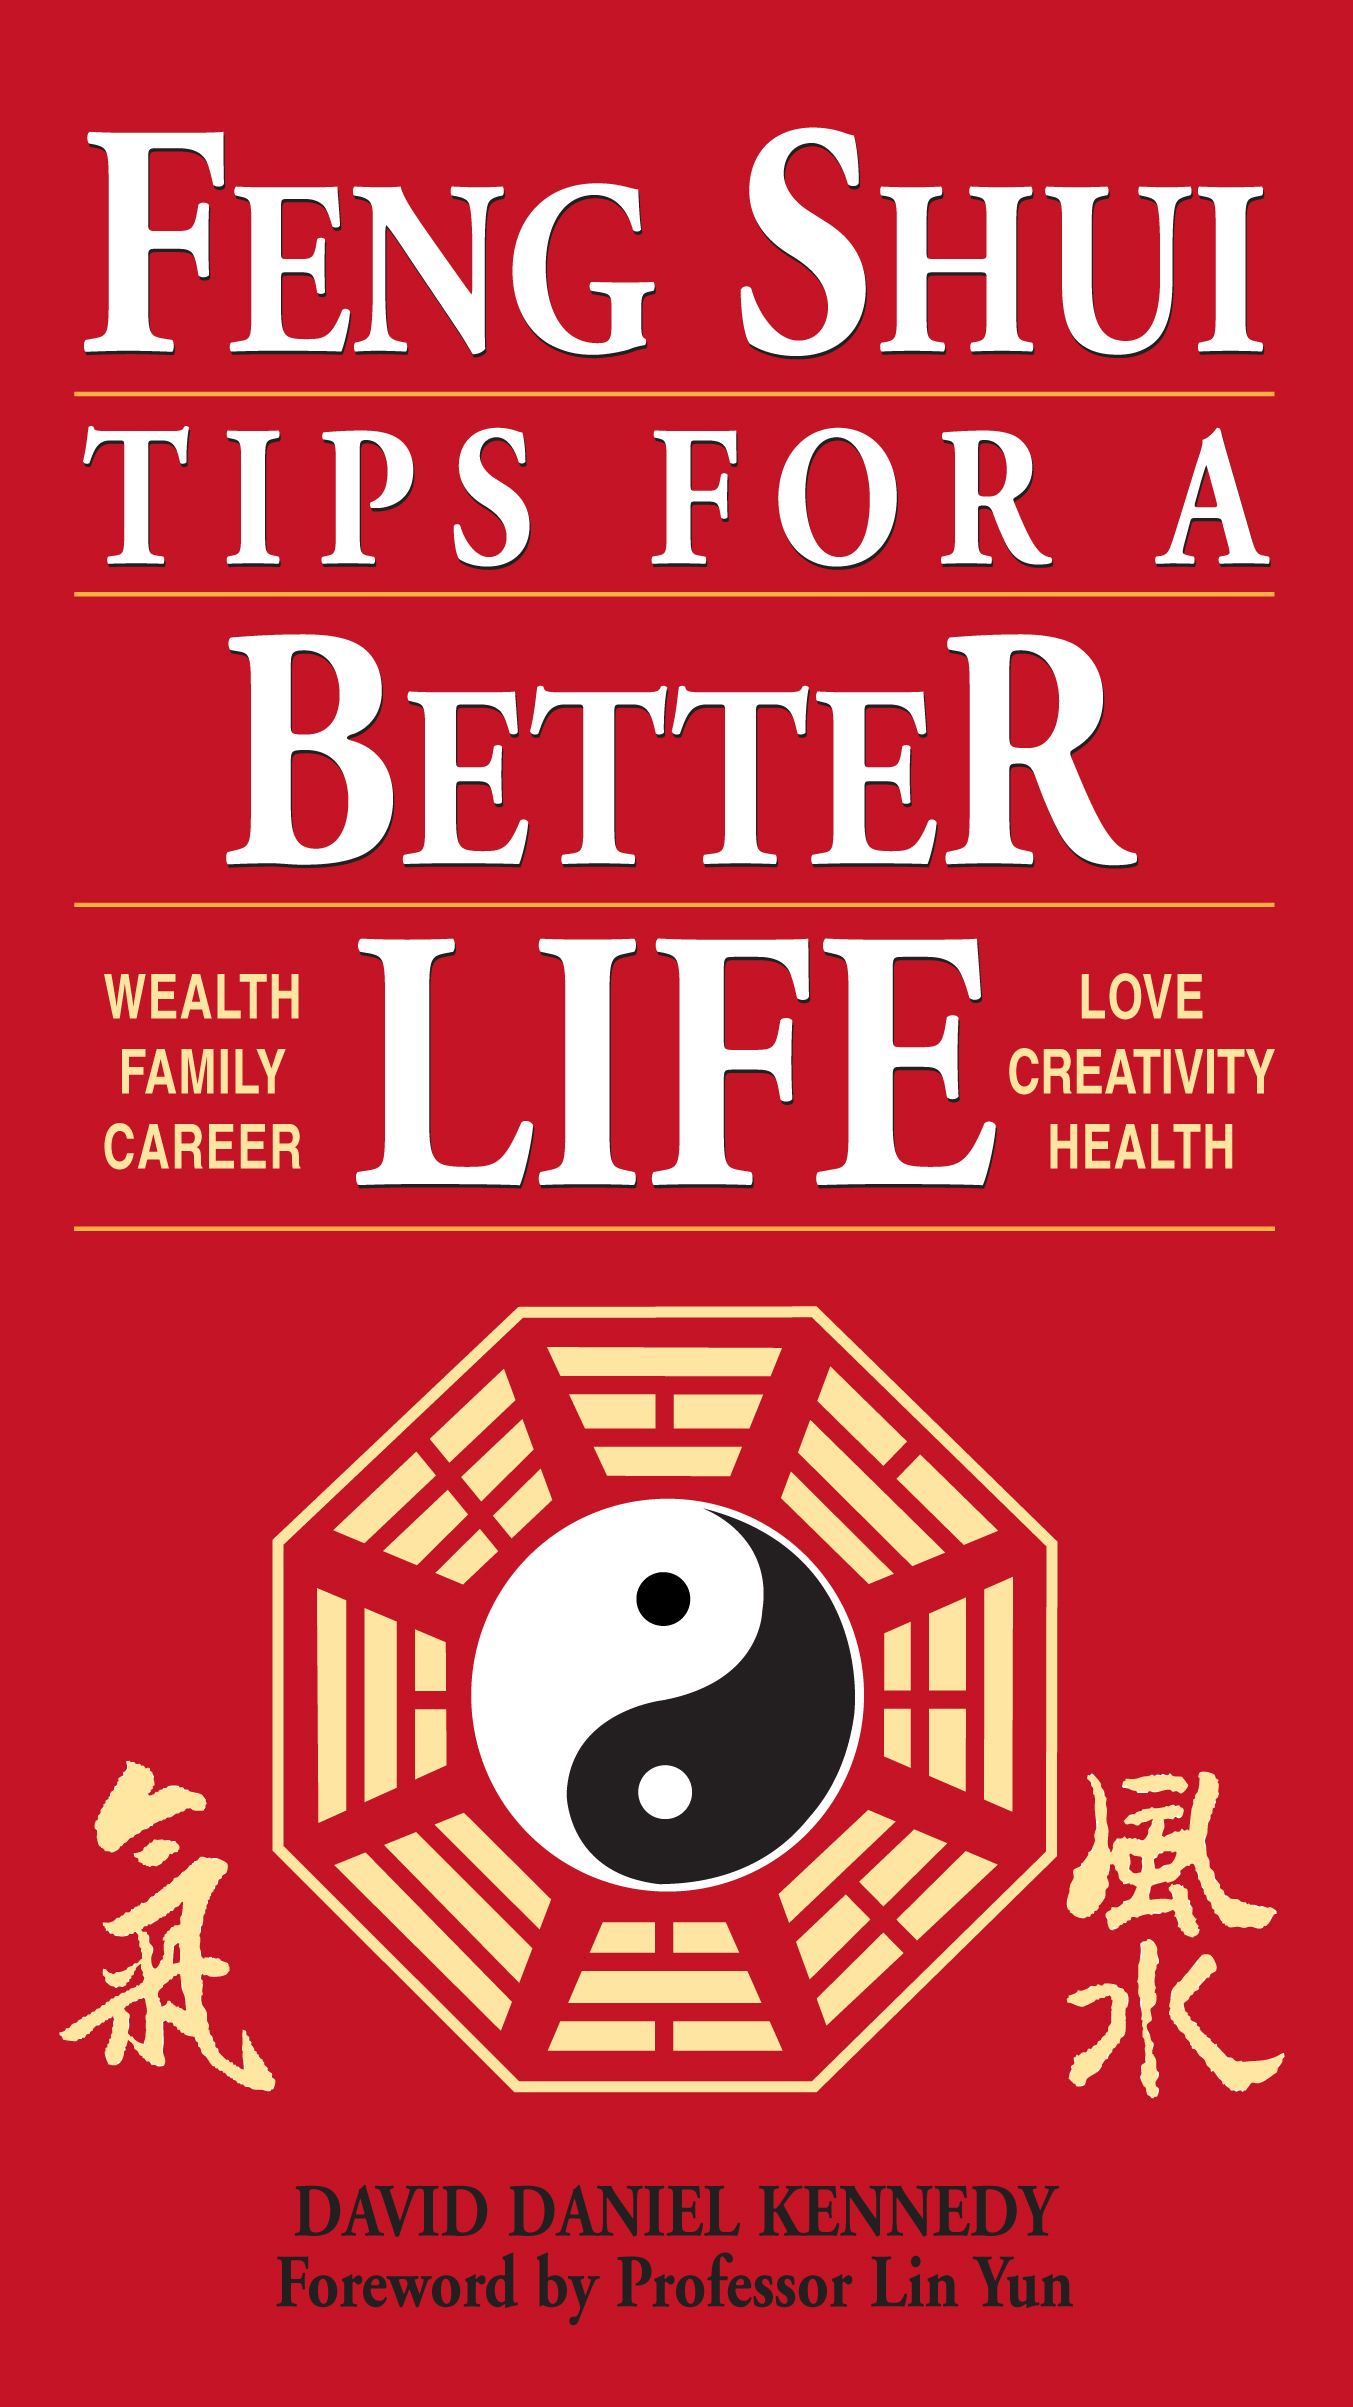 Feng Shui Tips for a Better Life  - David Daniel Kennedy